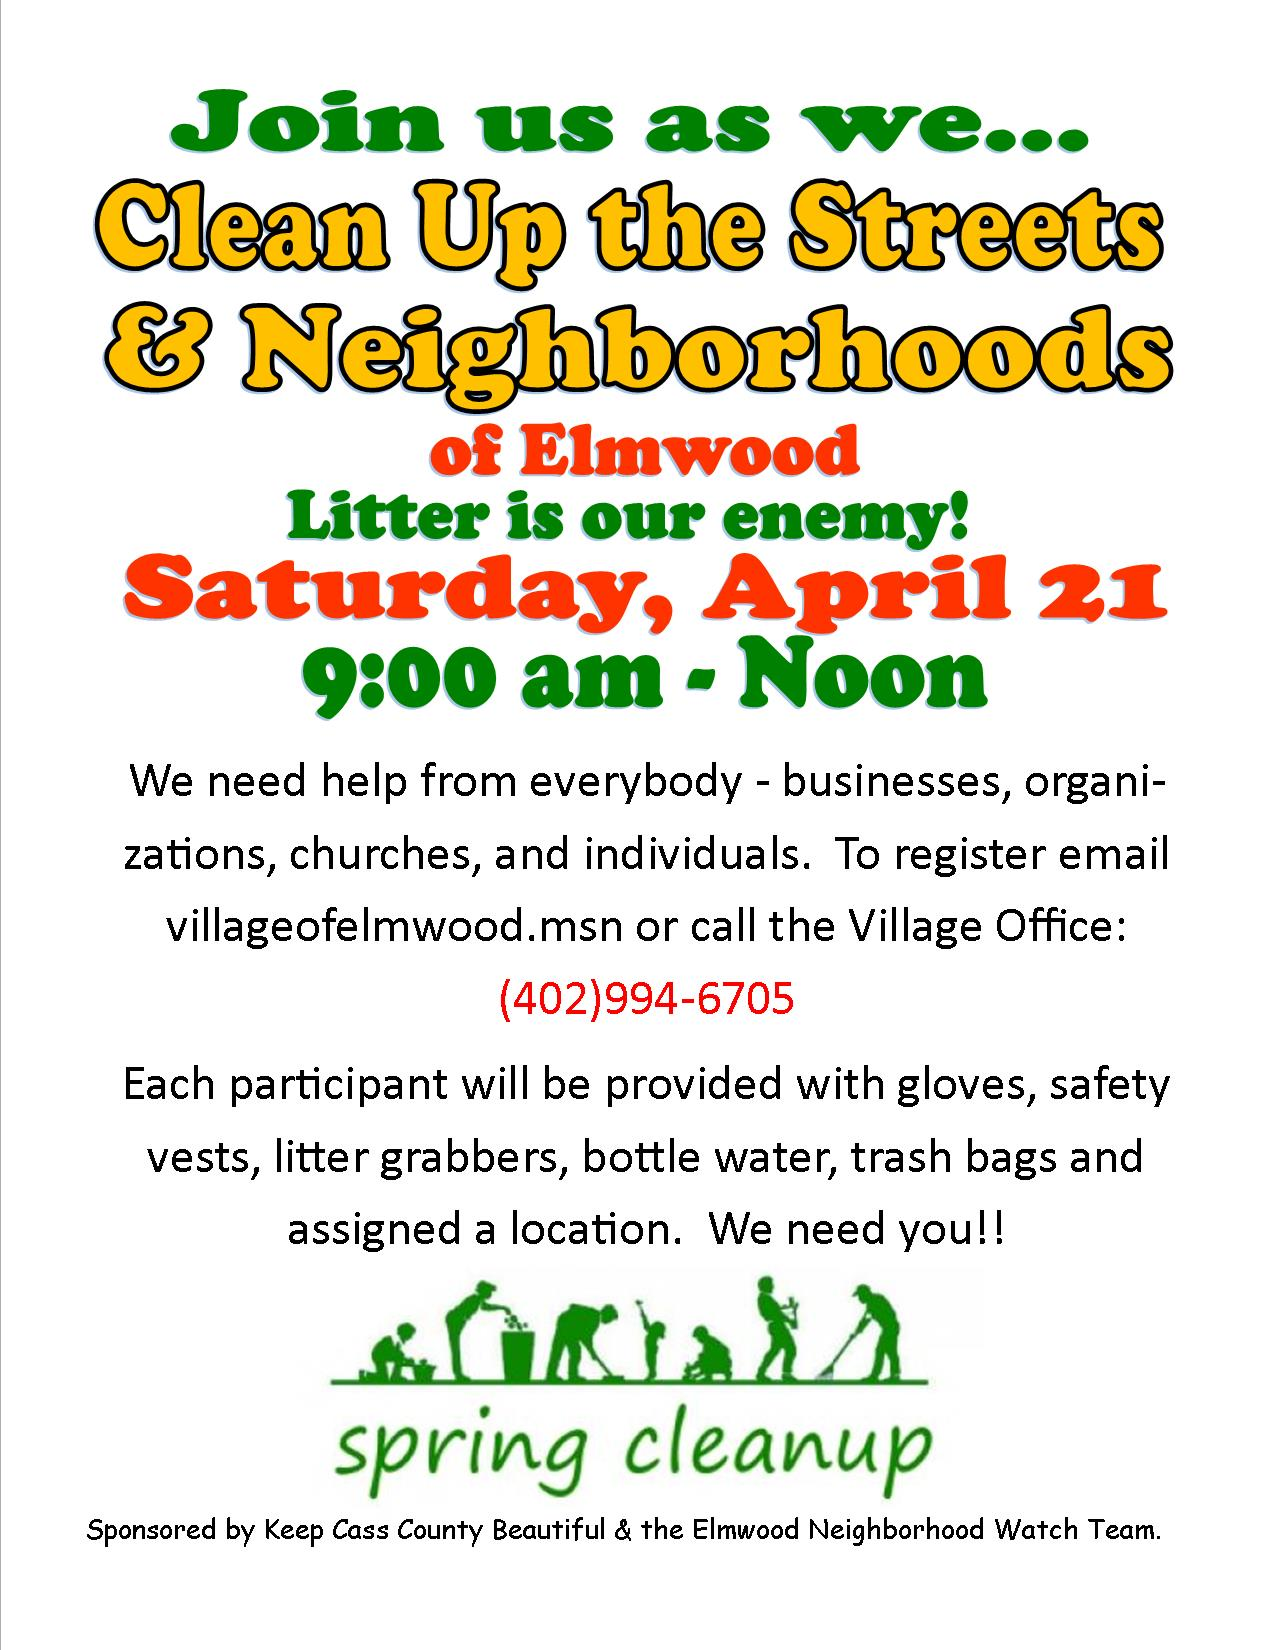 Elmwood Clean Up the Streets NWP